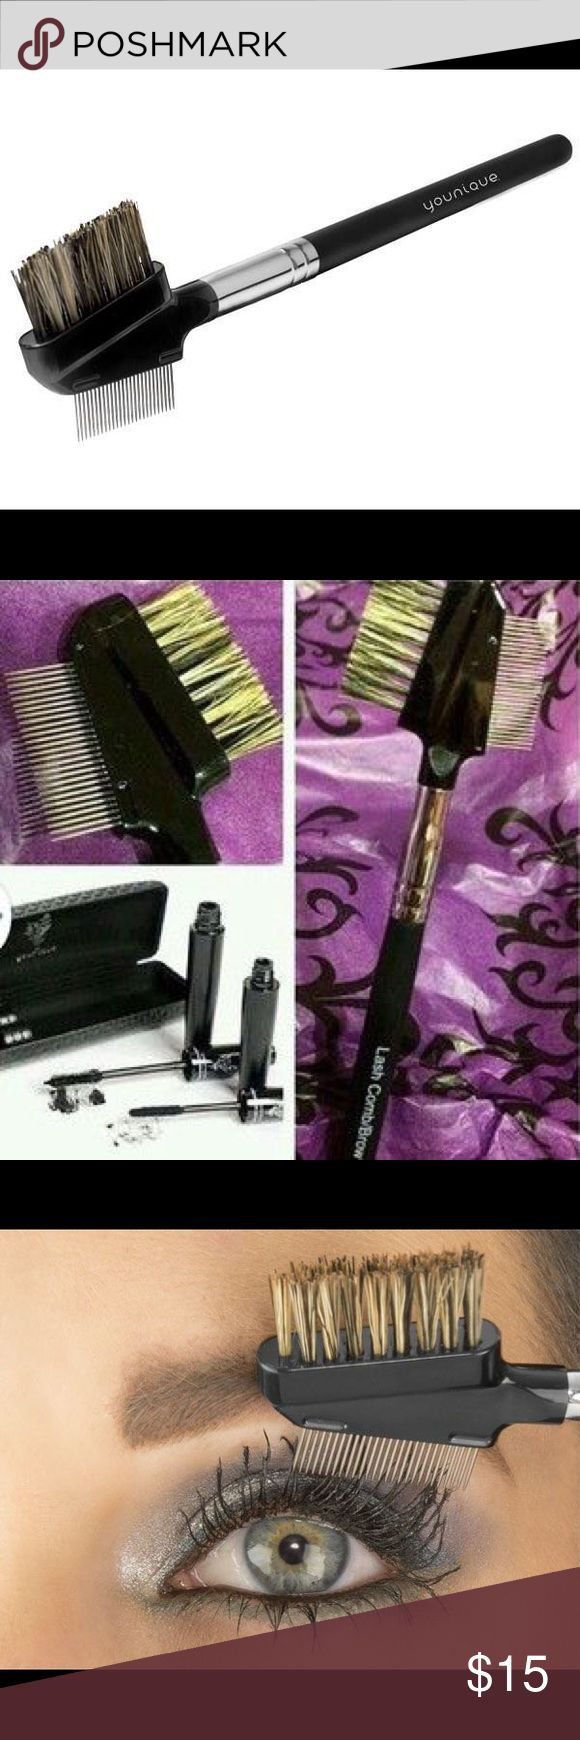 🌟NEW🌟 Lash Comb/Brow Brush Bundle with 3D Lash Mascara & save 10%!   Show those brows who's boss and keep your lashes in line with a Lash Comb/Brow Brush that tames, separates, and keeps clumps at bay. Made with boar hair. Directions:  Comb your lashes while moving up, out, and away from eyes. Younique Makeup Brushes & Tools